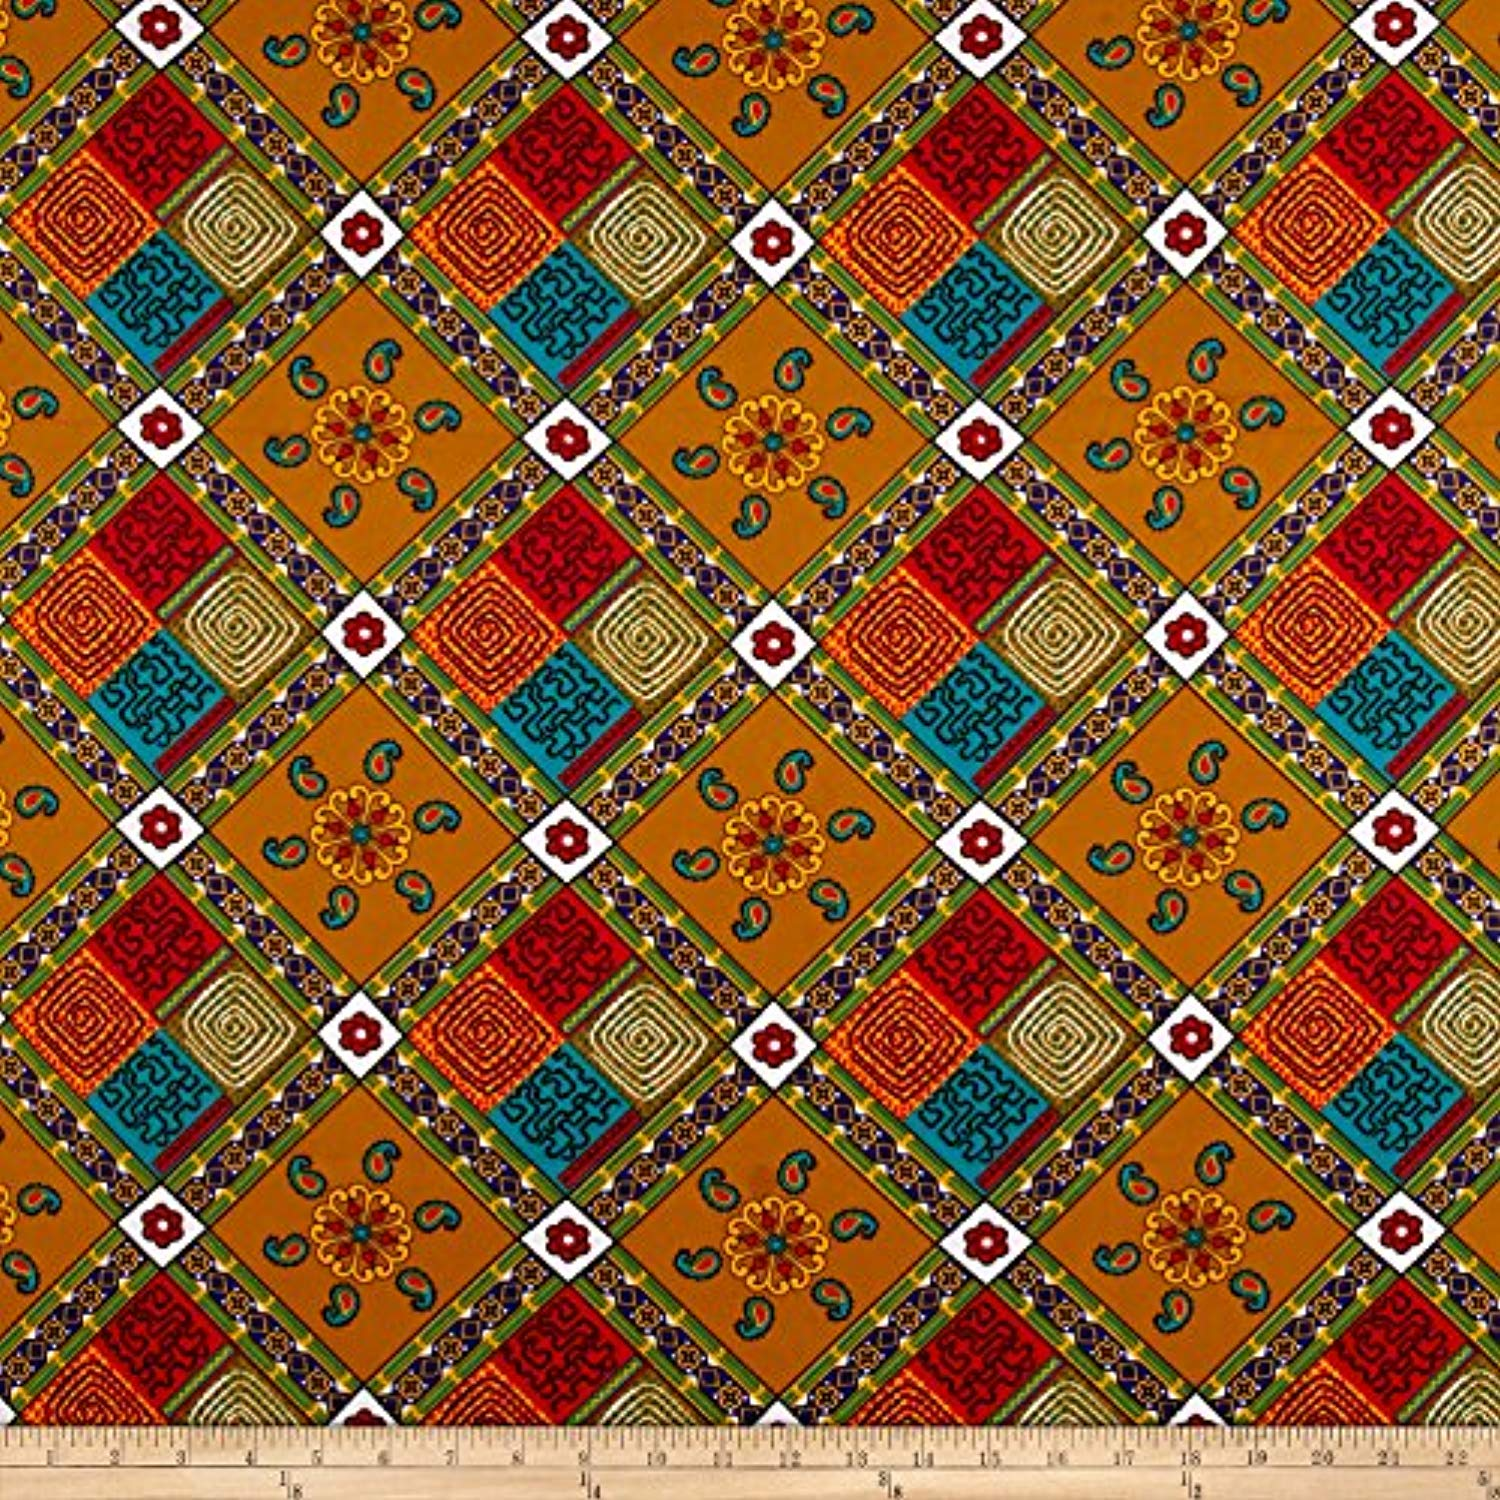 Sonna USA Supreme Fancy African Print 6 Yard Fabric, Tan/Multi - Ufumbuzi - Home